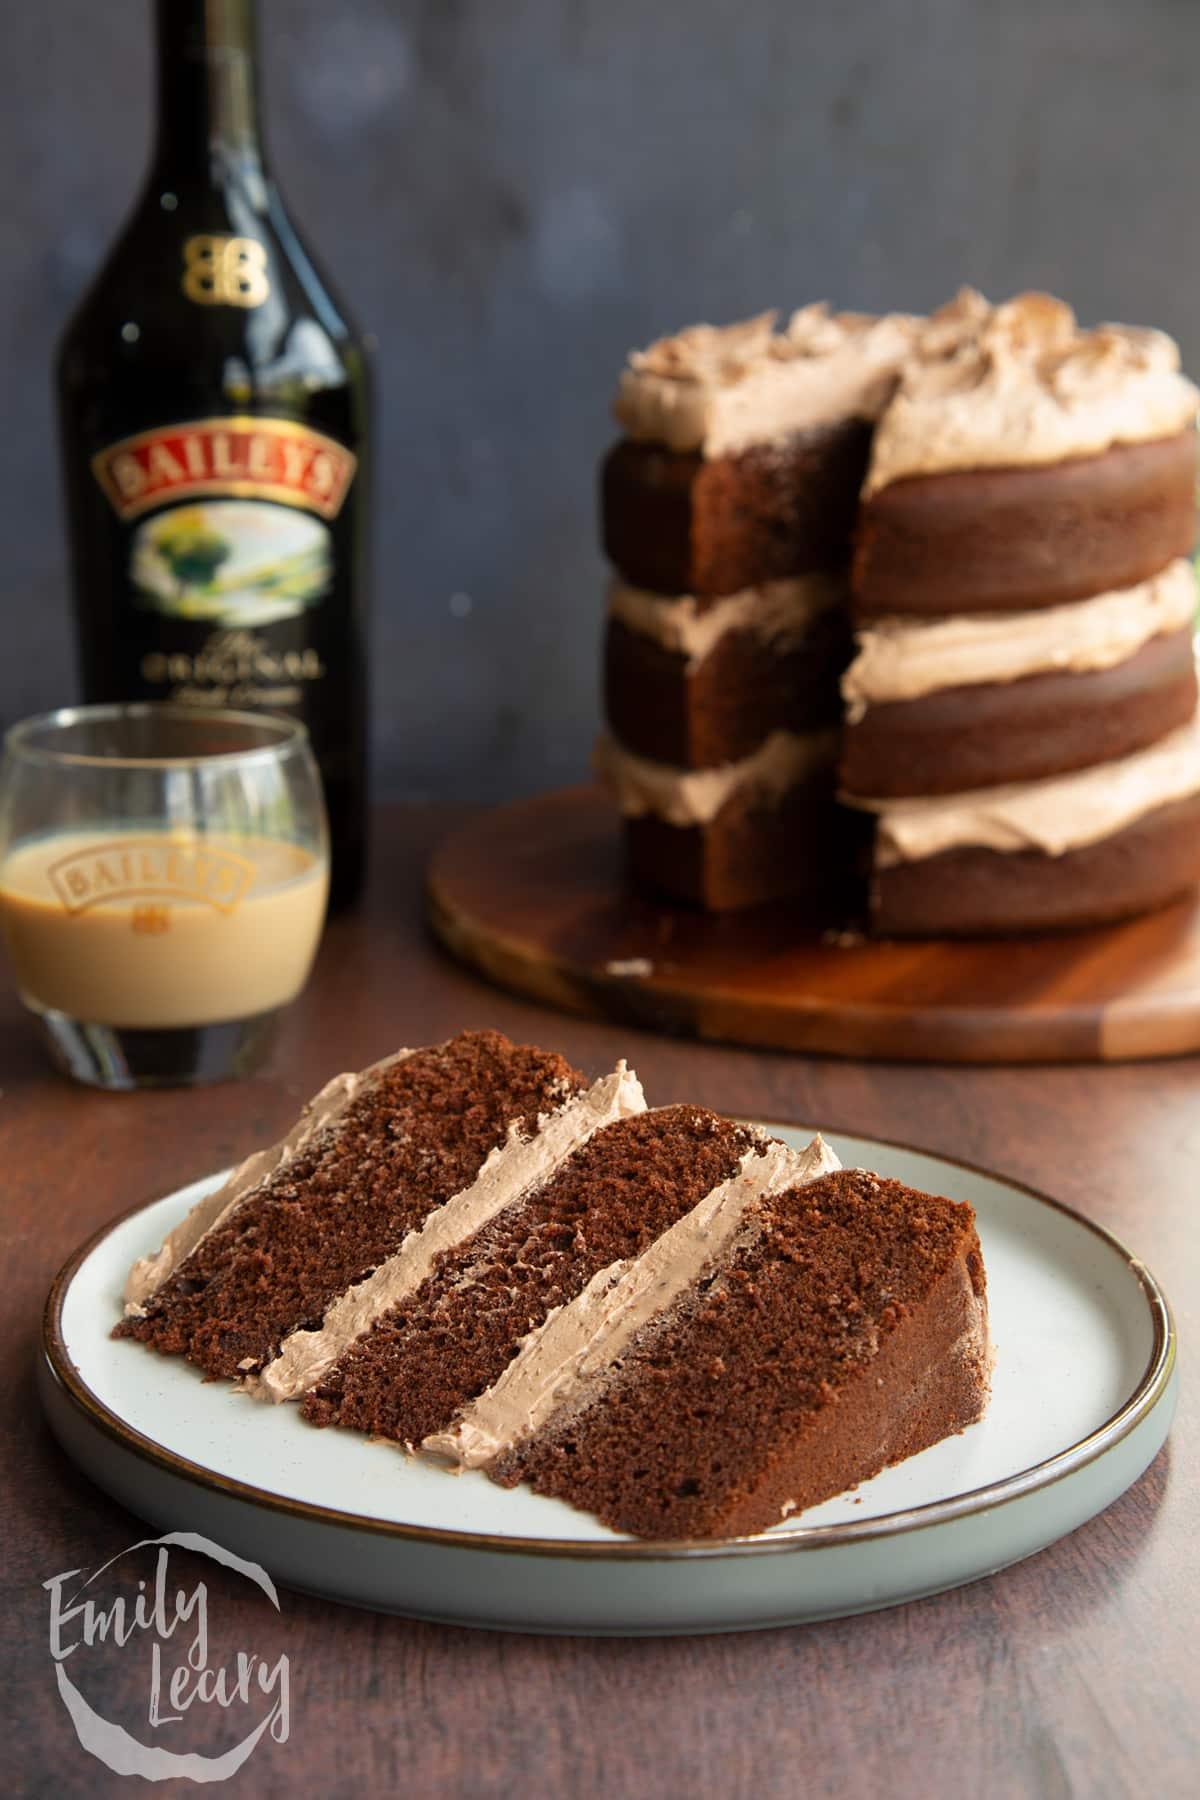 Slice of chocolate Baileys cake with Baileys buttercream frosting on a white plate.